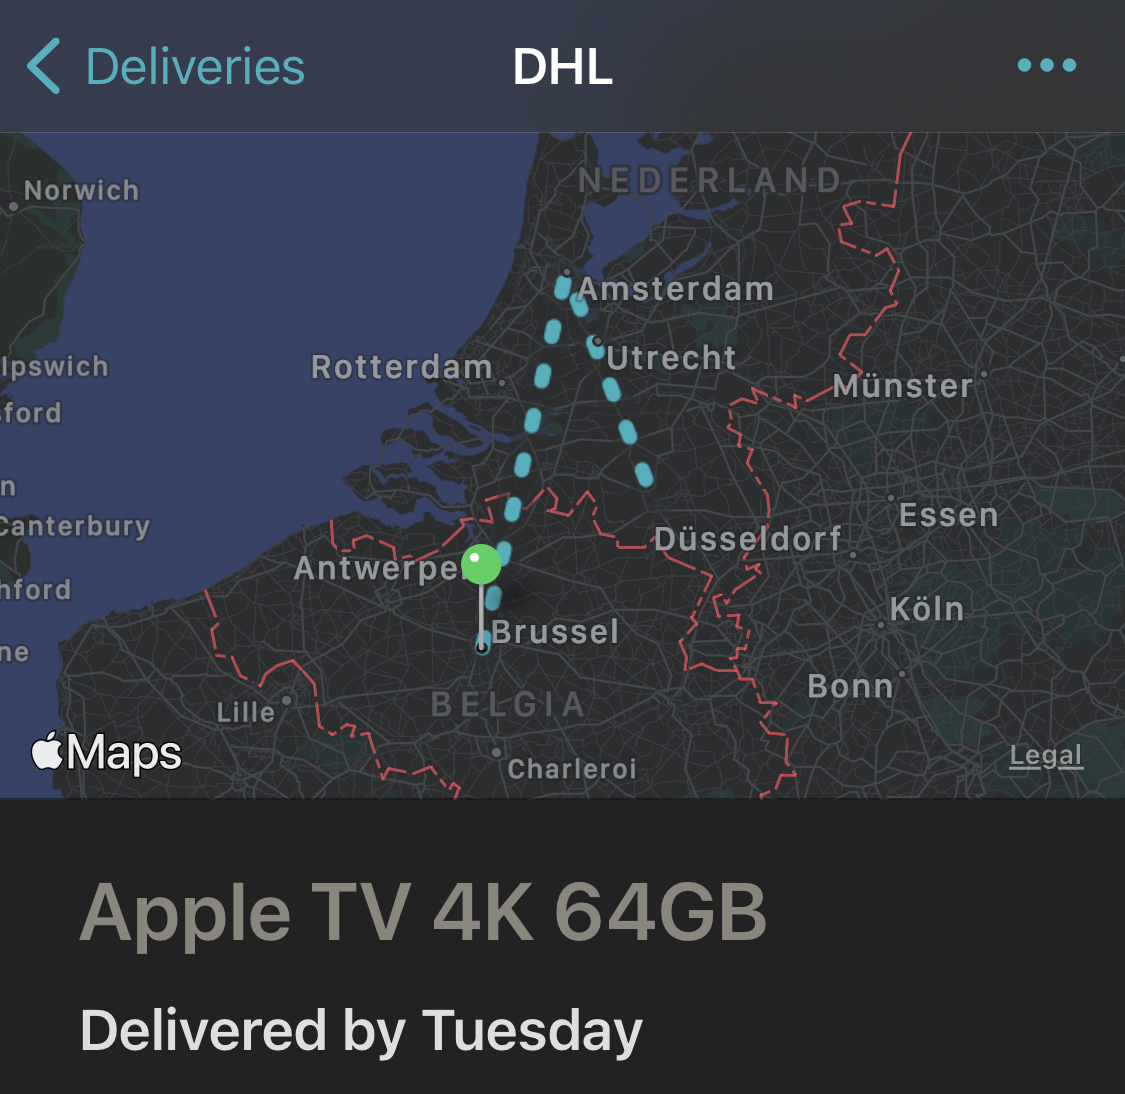 Apple TV 4k 2021 delivered by Tuesday